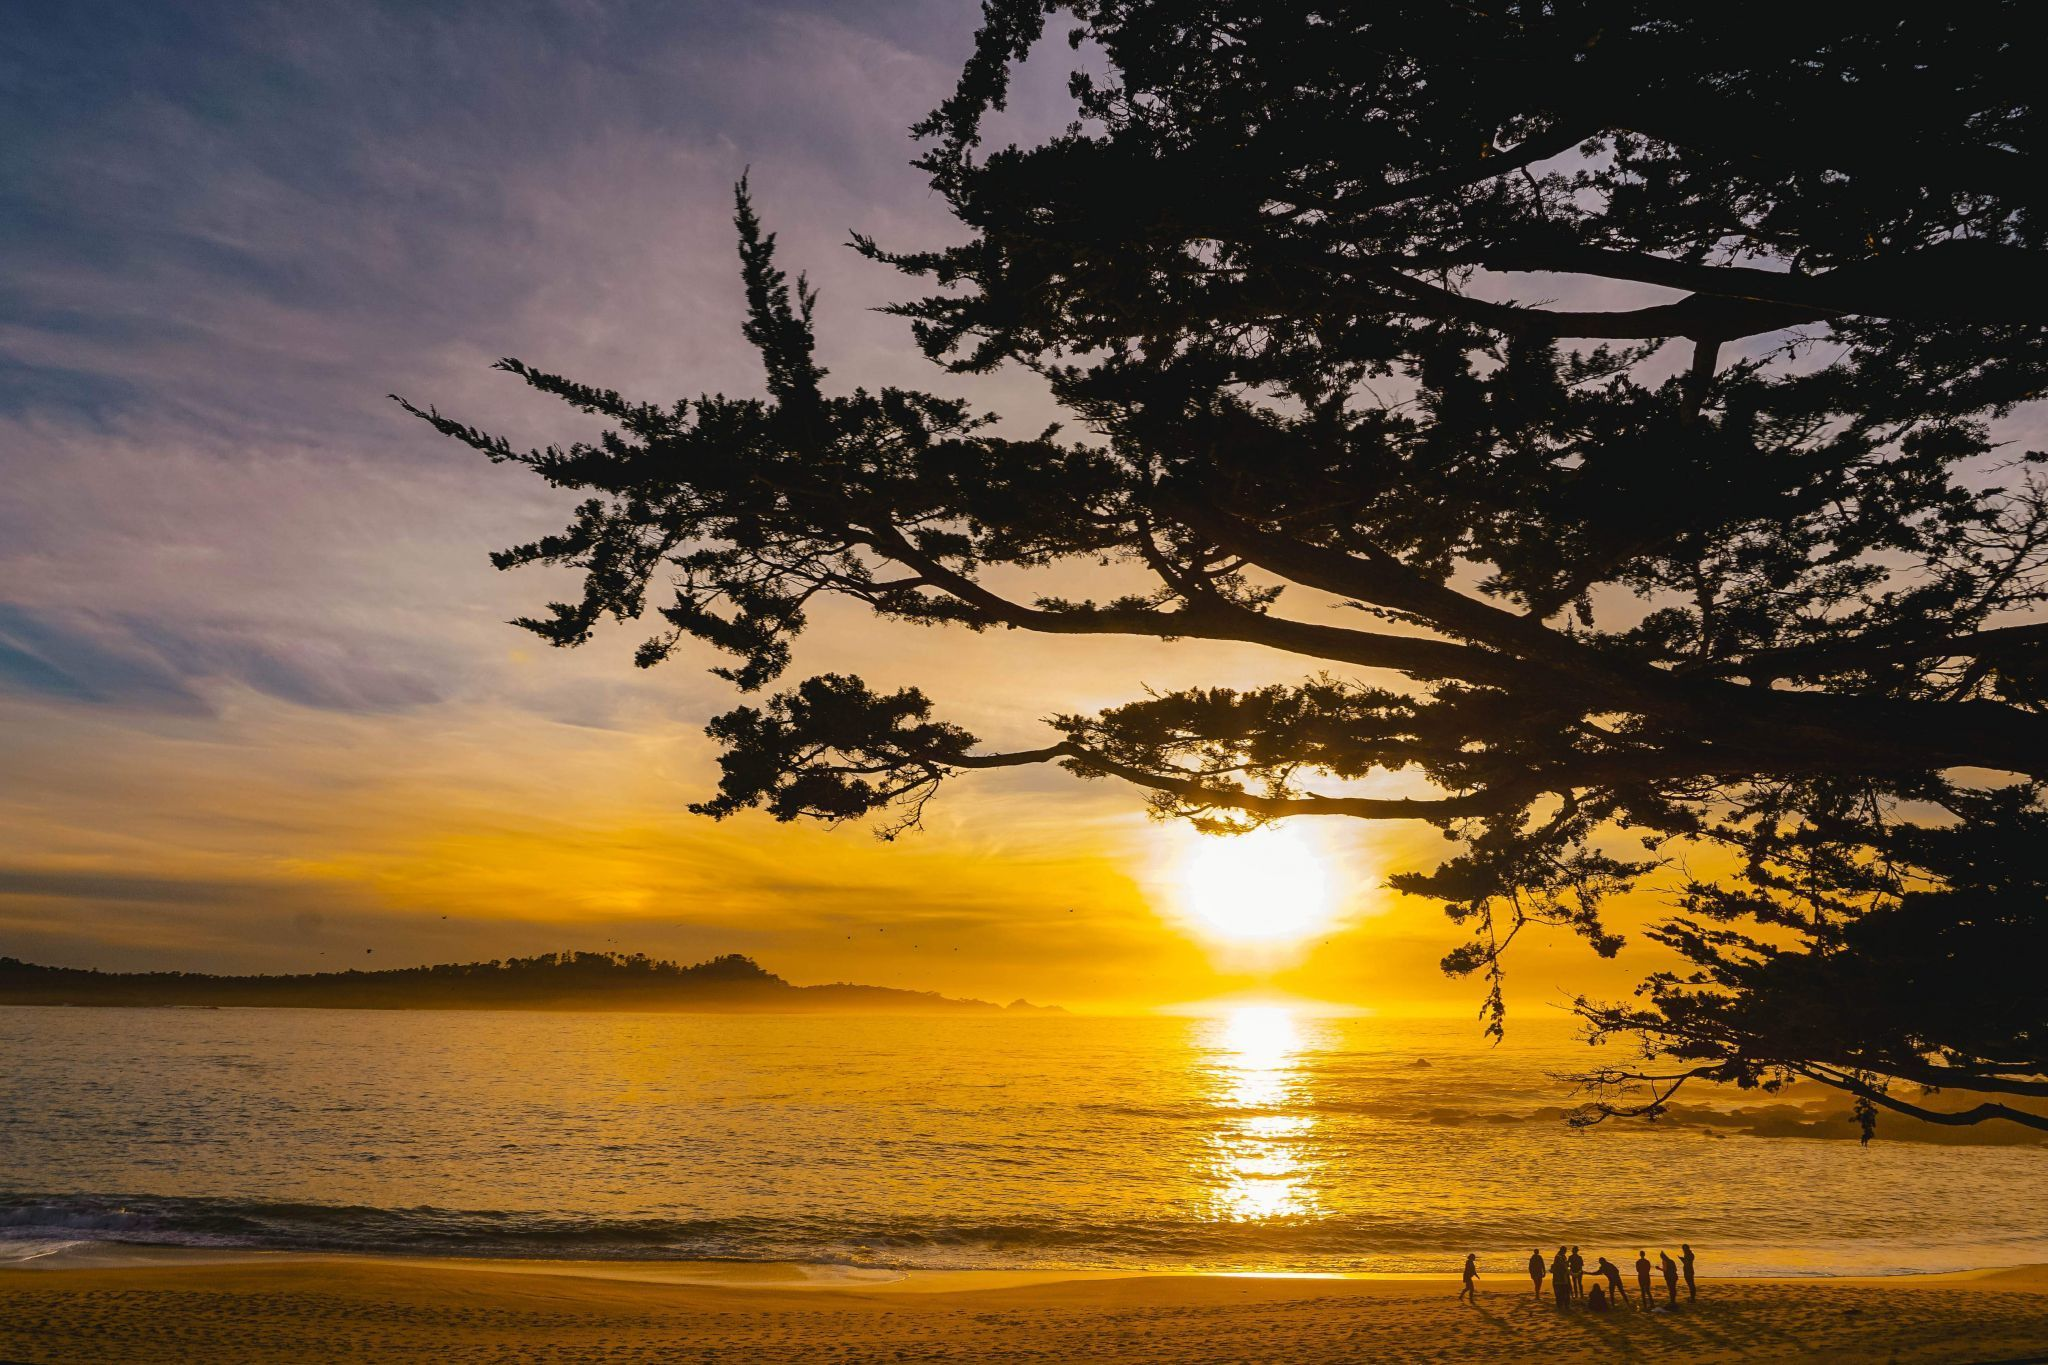 Carmel by the Sea at Sunset